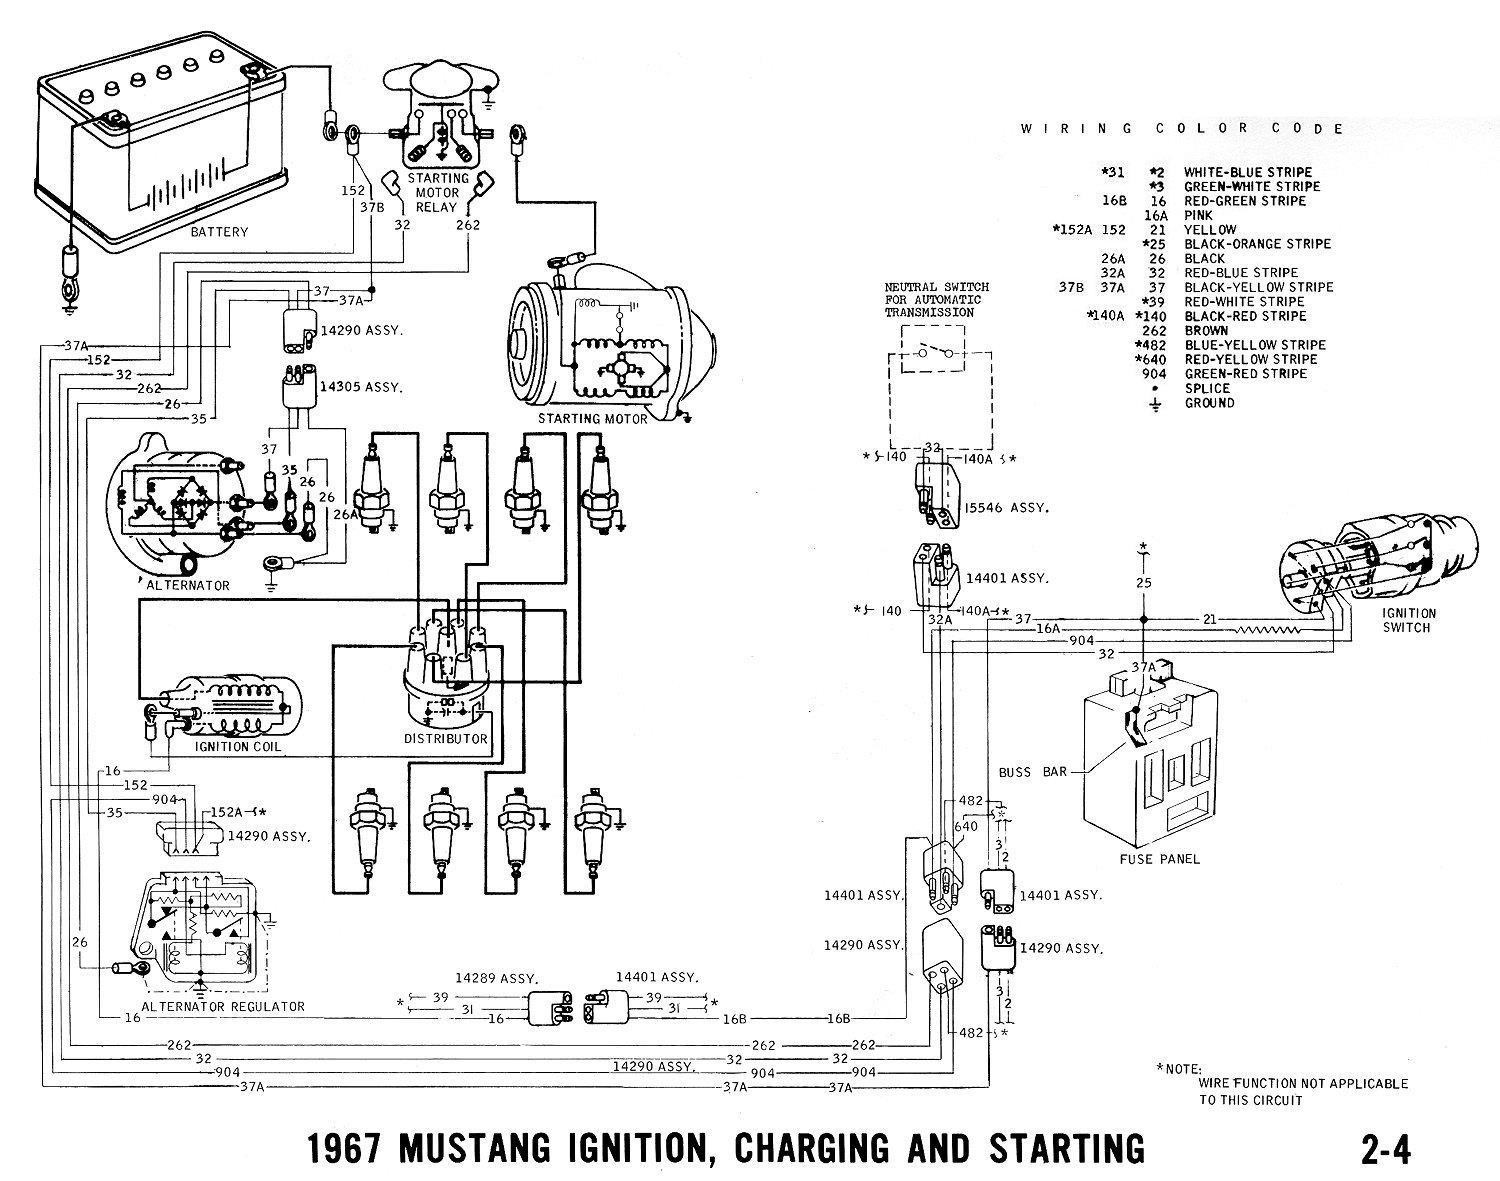 hight resolution of 1970 ford mustang wiring diagram wiring diagram meta 1970 mustang mach 1 instrument cluster on 1970 mercury cougar wiring